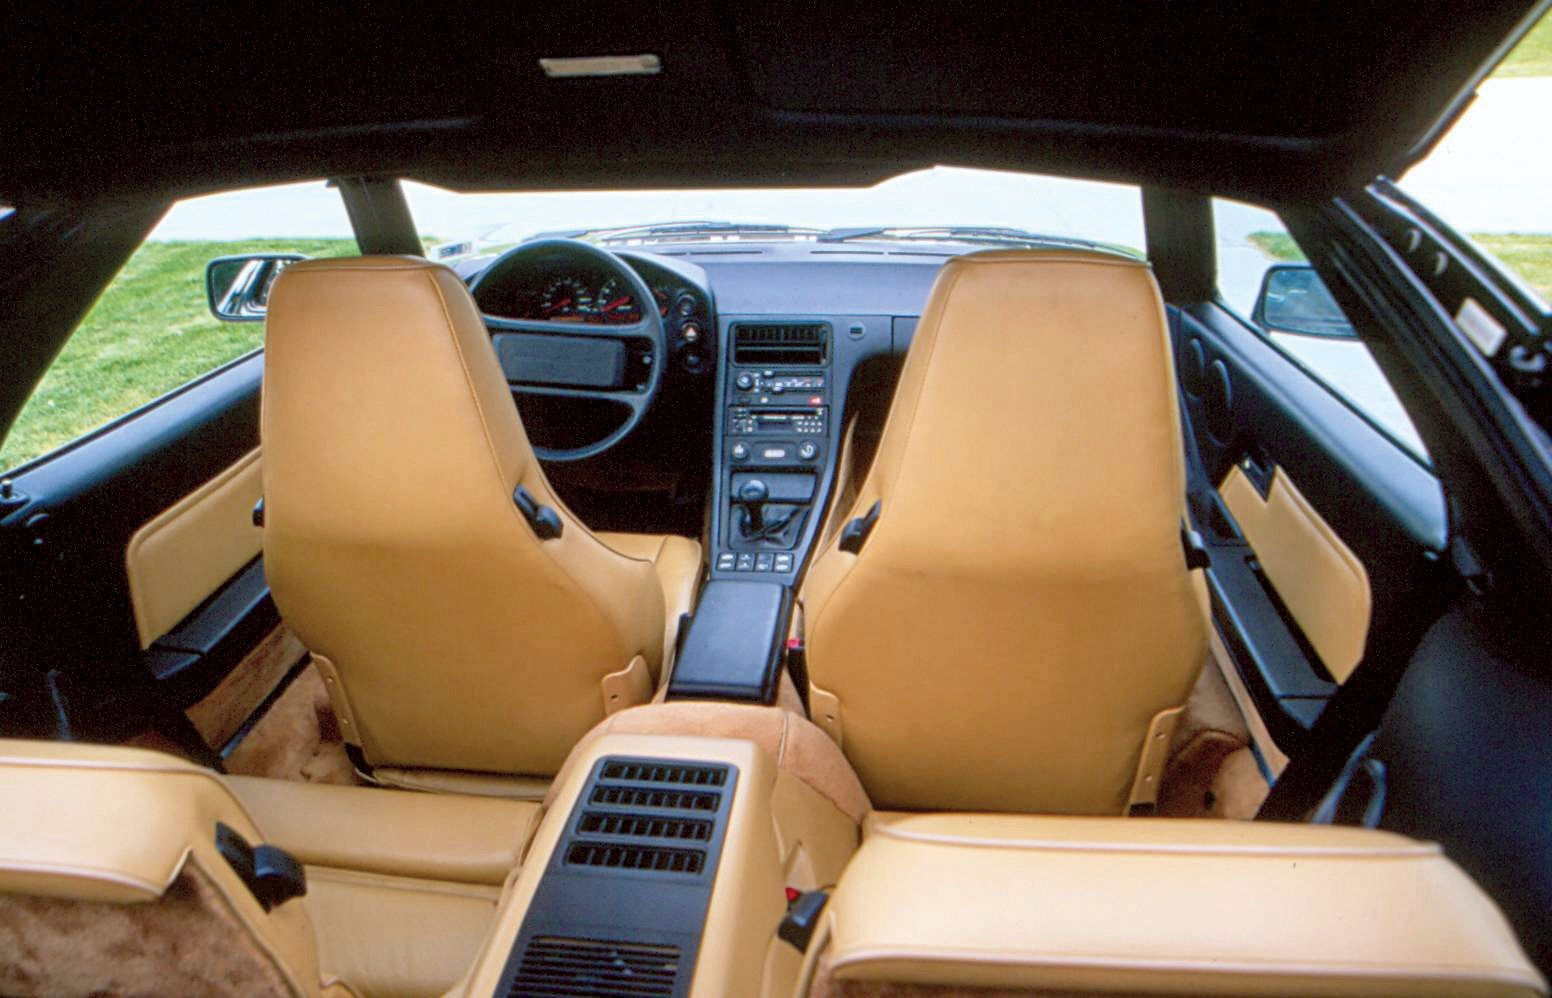 orsche 928 Interior and Rear Seats